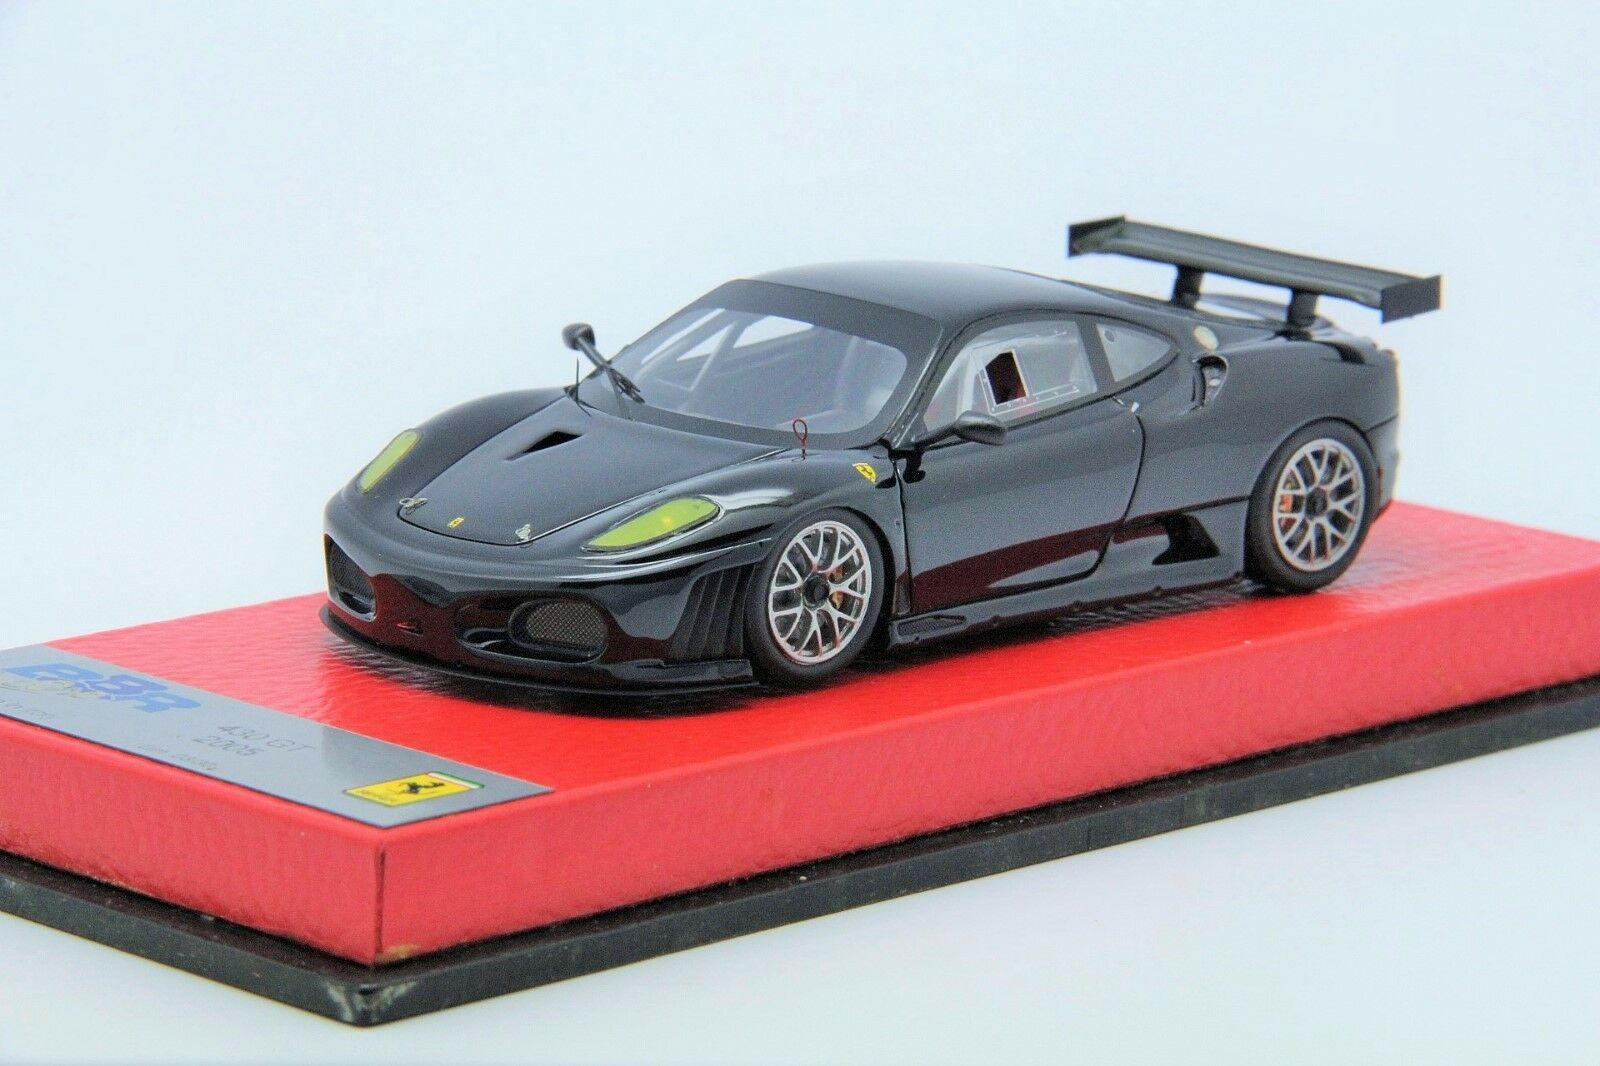 1 43 BBR Ferrari F430 GT 2005 Black Free Shipping  MR Looksmart Frontiart